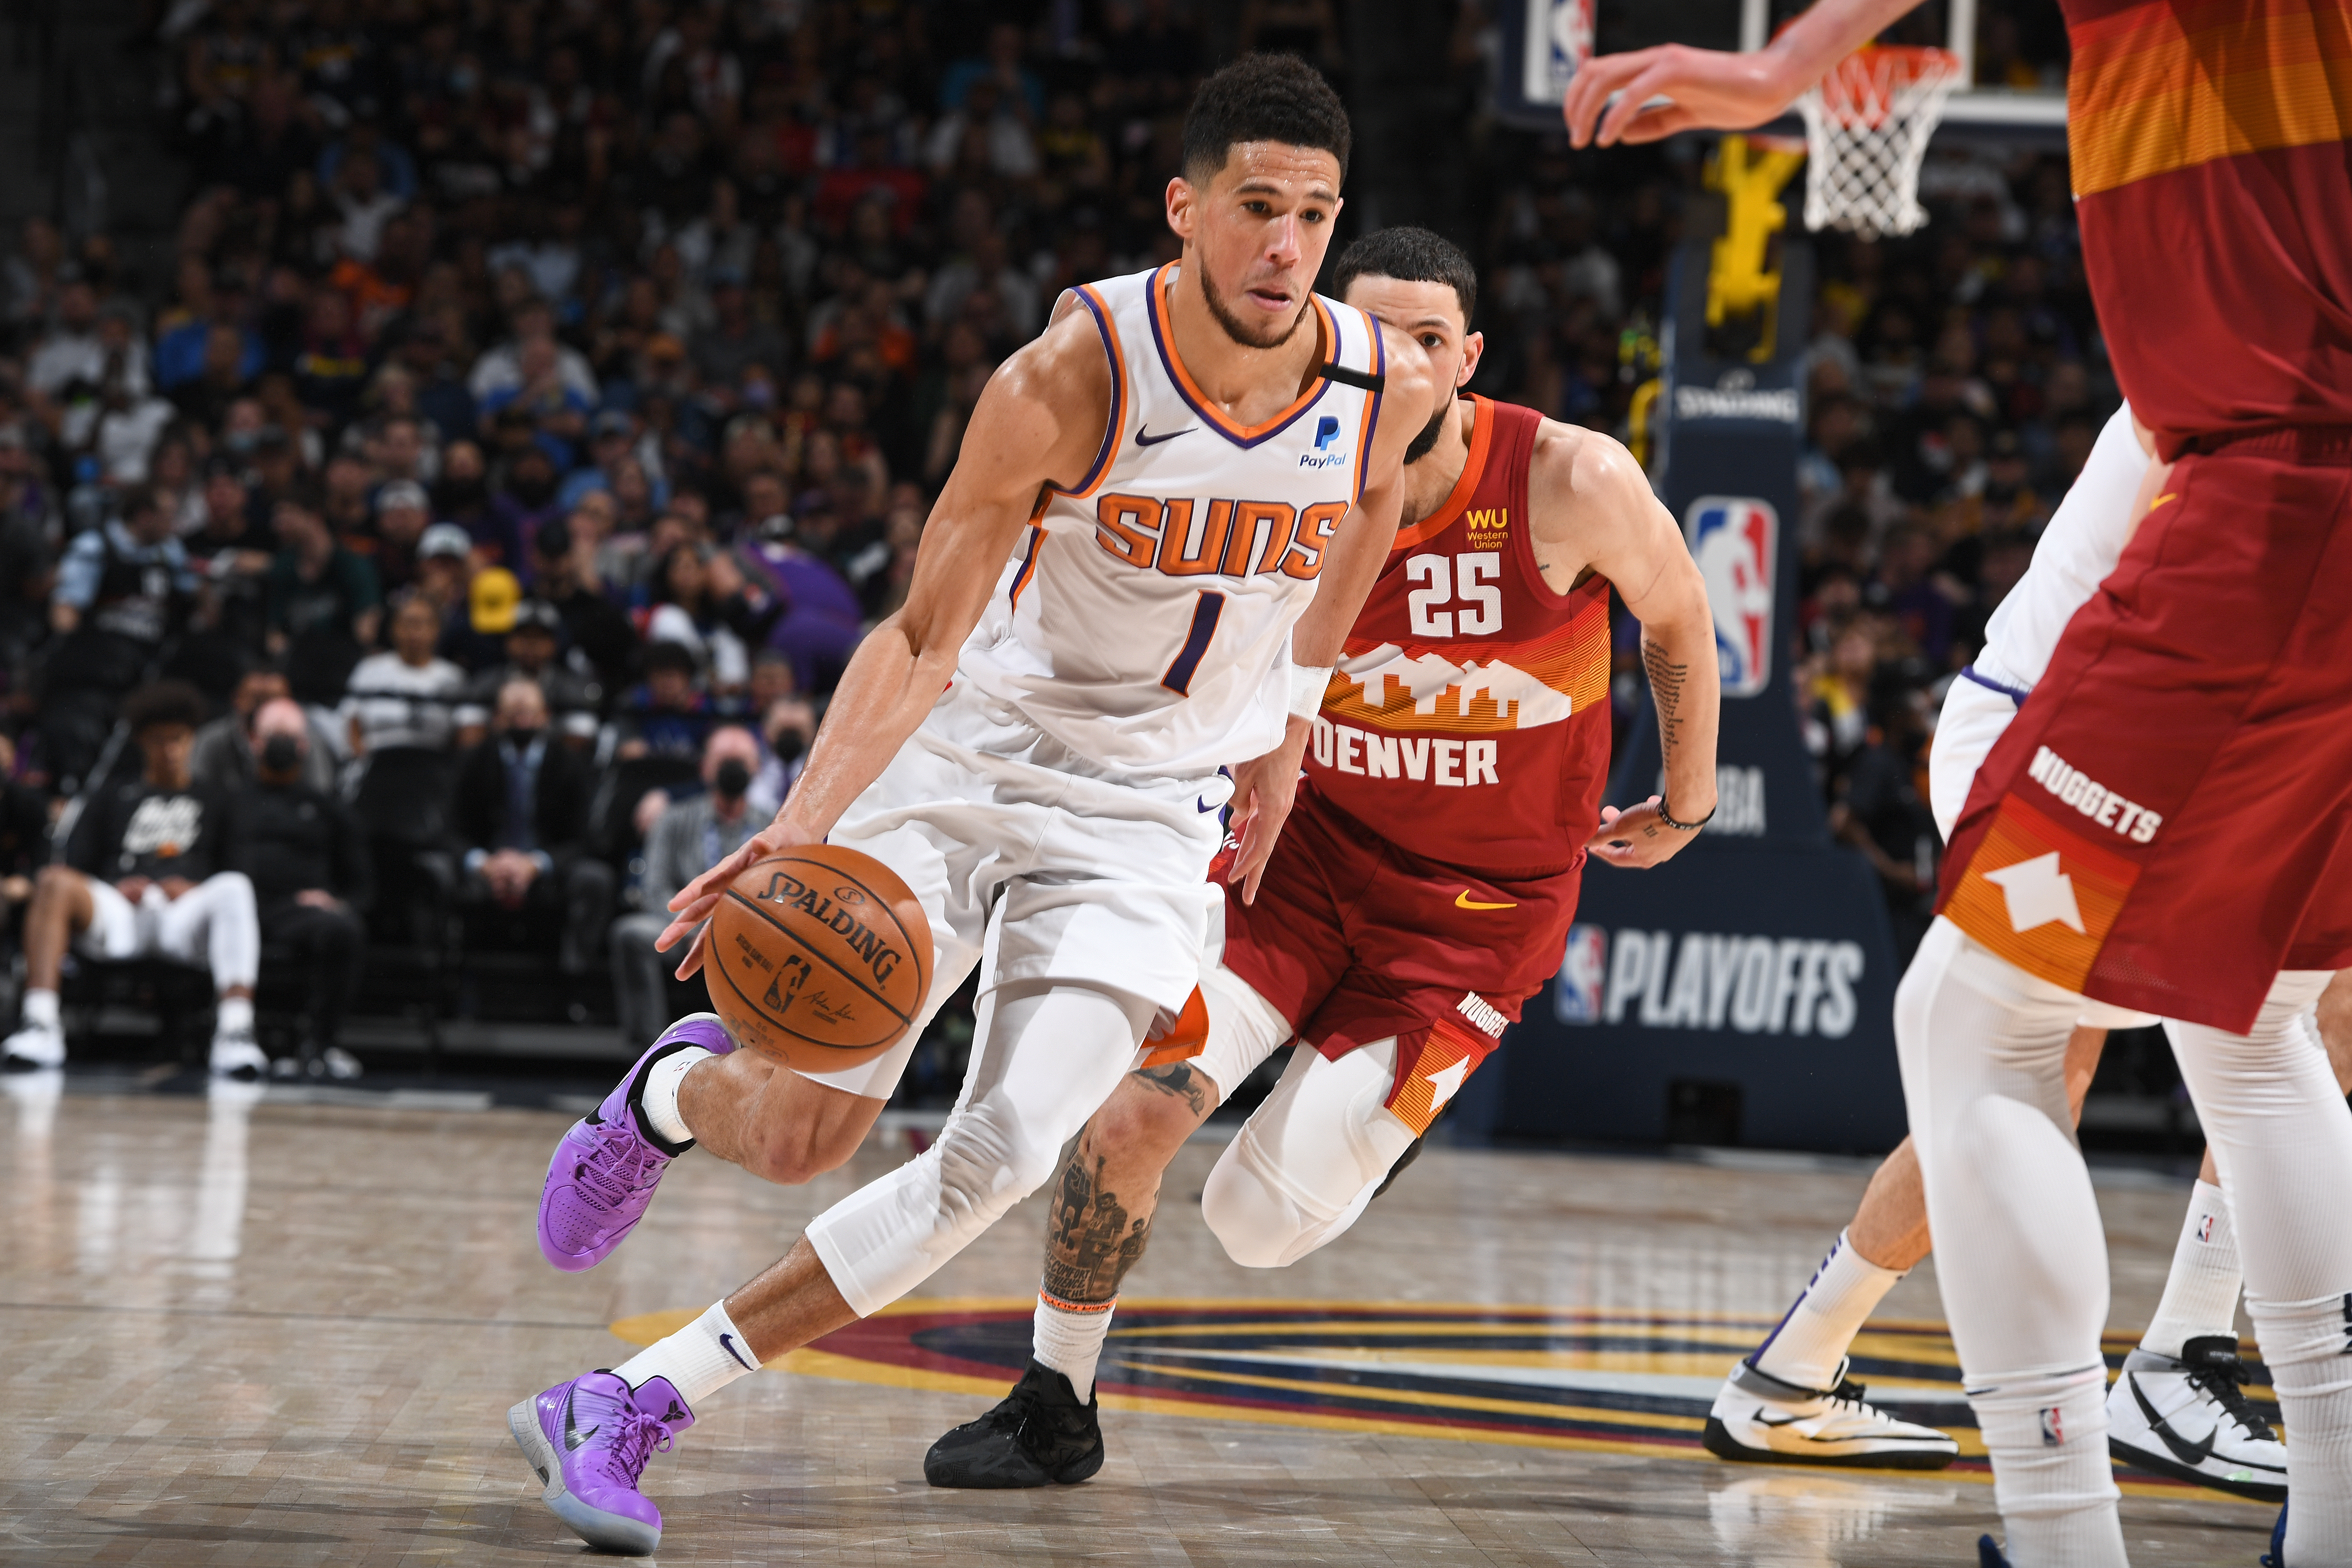 Devin Booker of the Phoenix Suns dribbles the ball during Round 2, Game 4 of the 2021 NBA Playoffs on June 13, 2021 at the Ball Arena in Denver, Colorado.